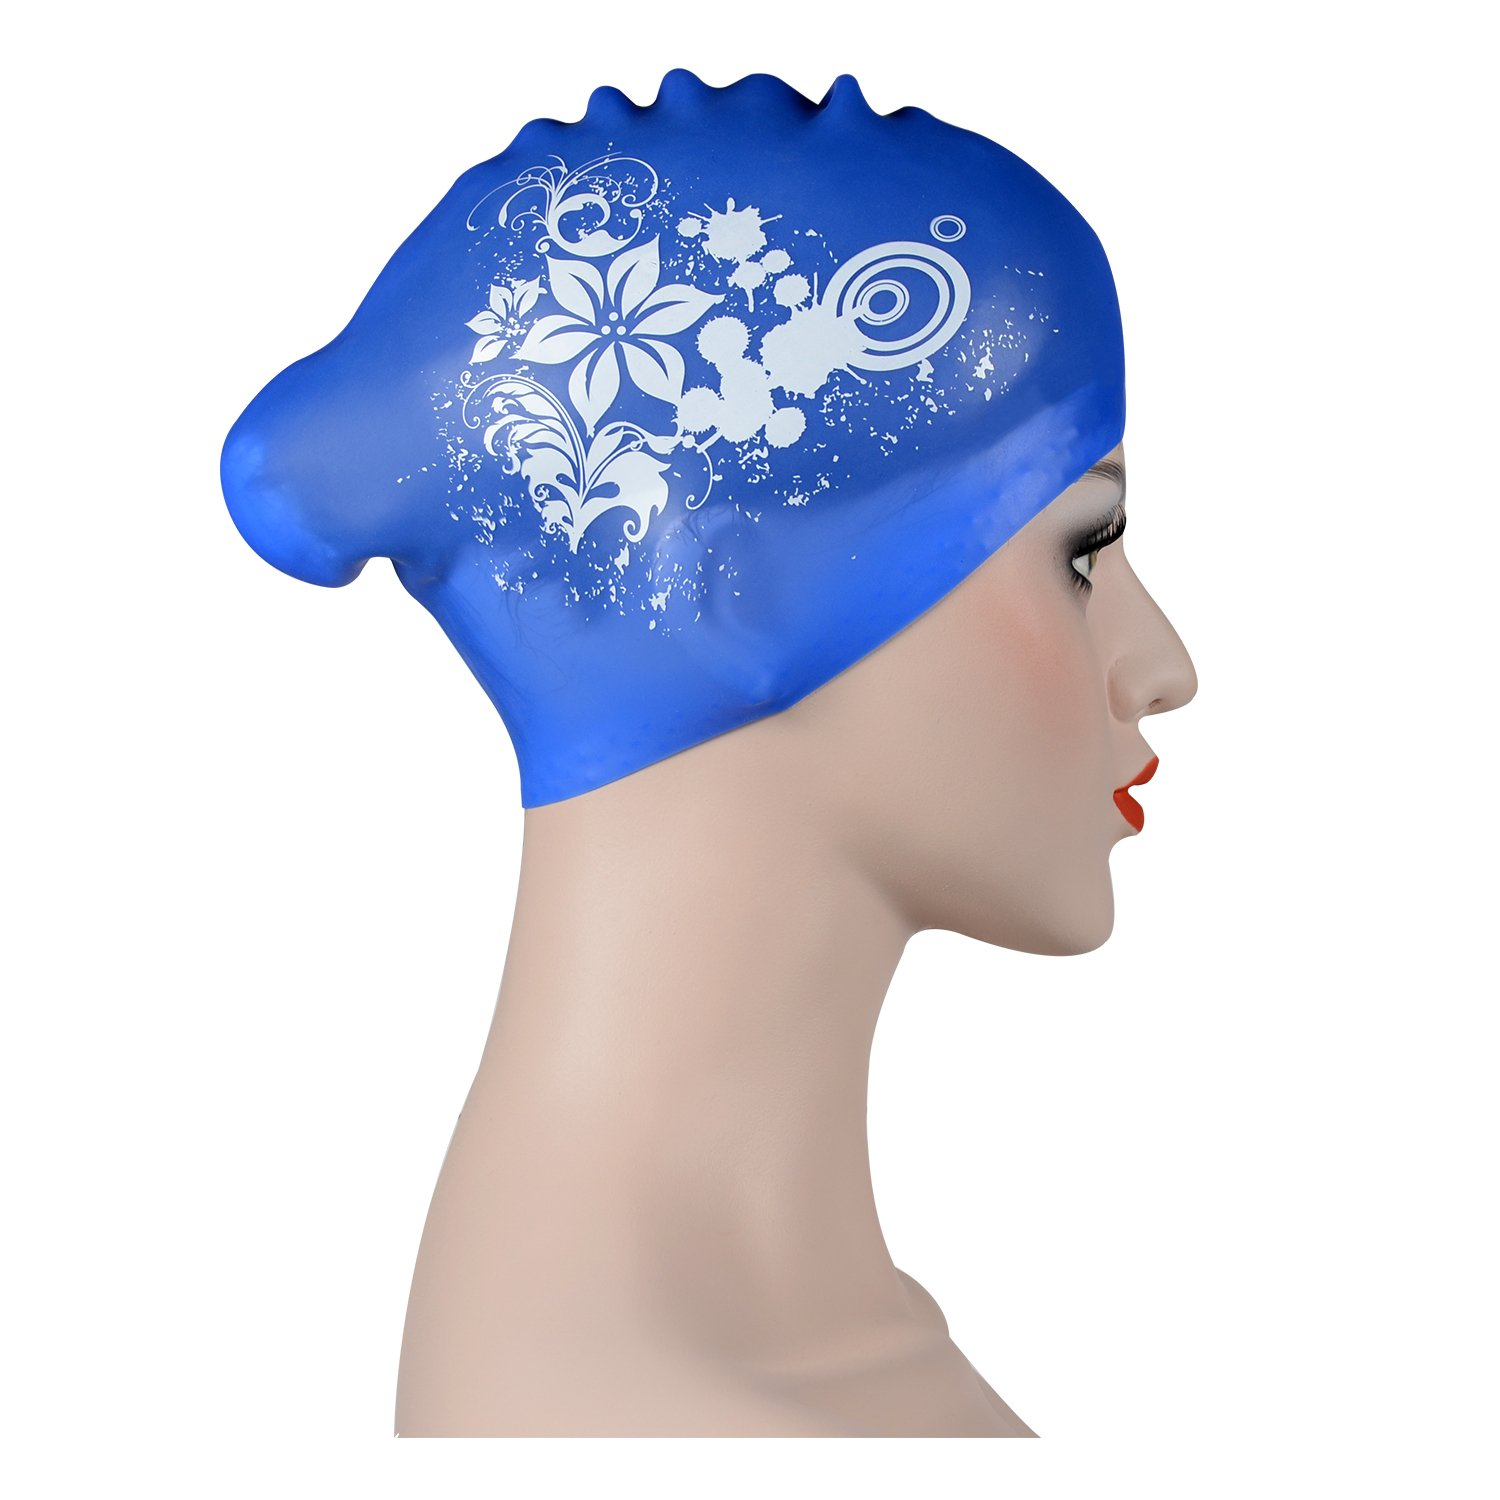 RONHAN Large Silicone Swimming Caps for Adults Women Men Girls boys, kids Swimming hat for Long Hair,Thick Hair,Curly Hair, Dreadlocks, Ear Wrap Shower Cap Keeps Hair Dry